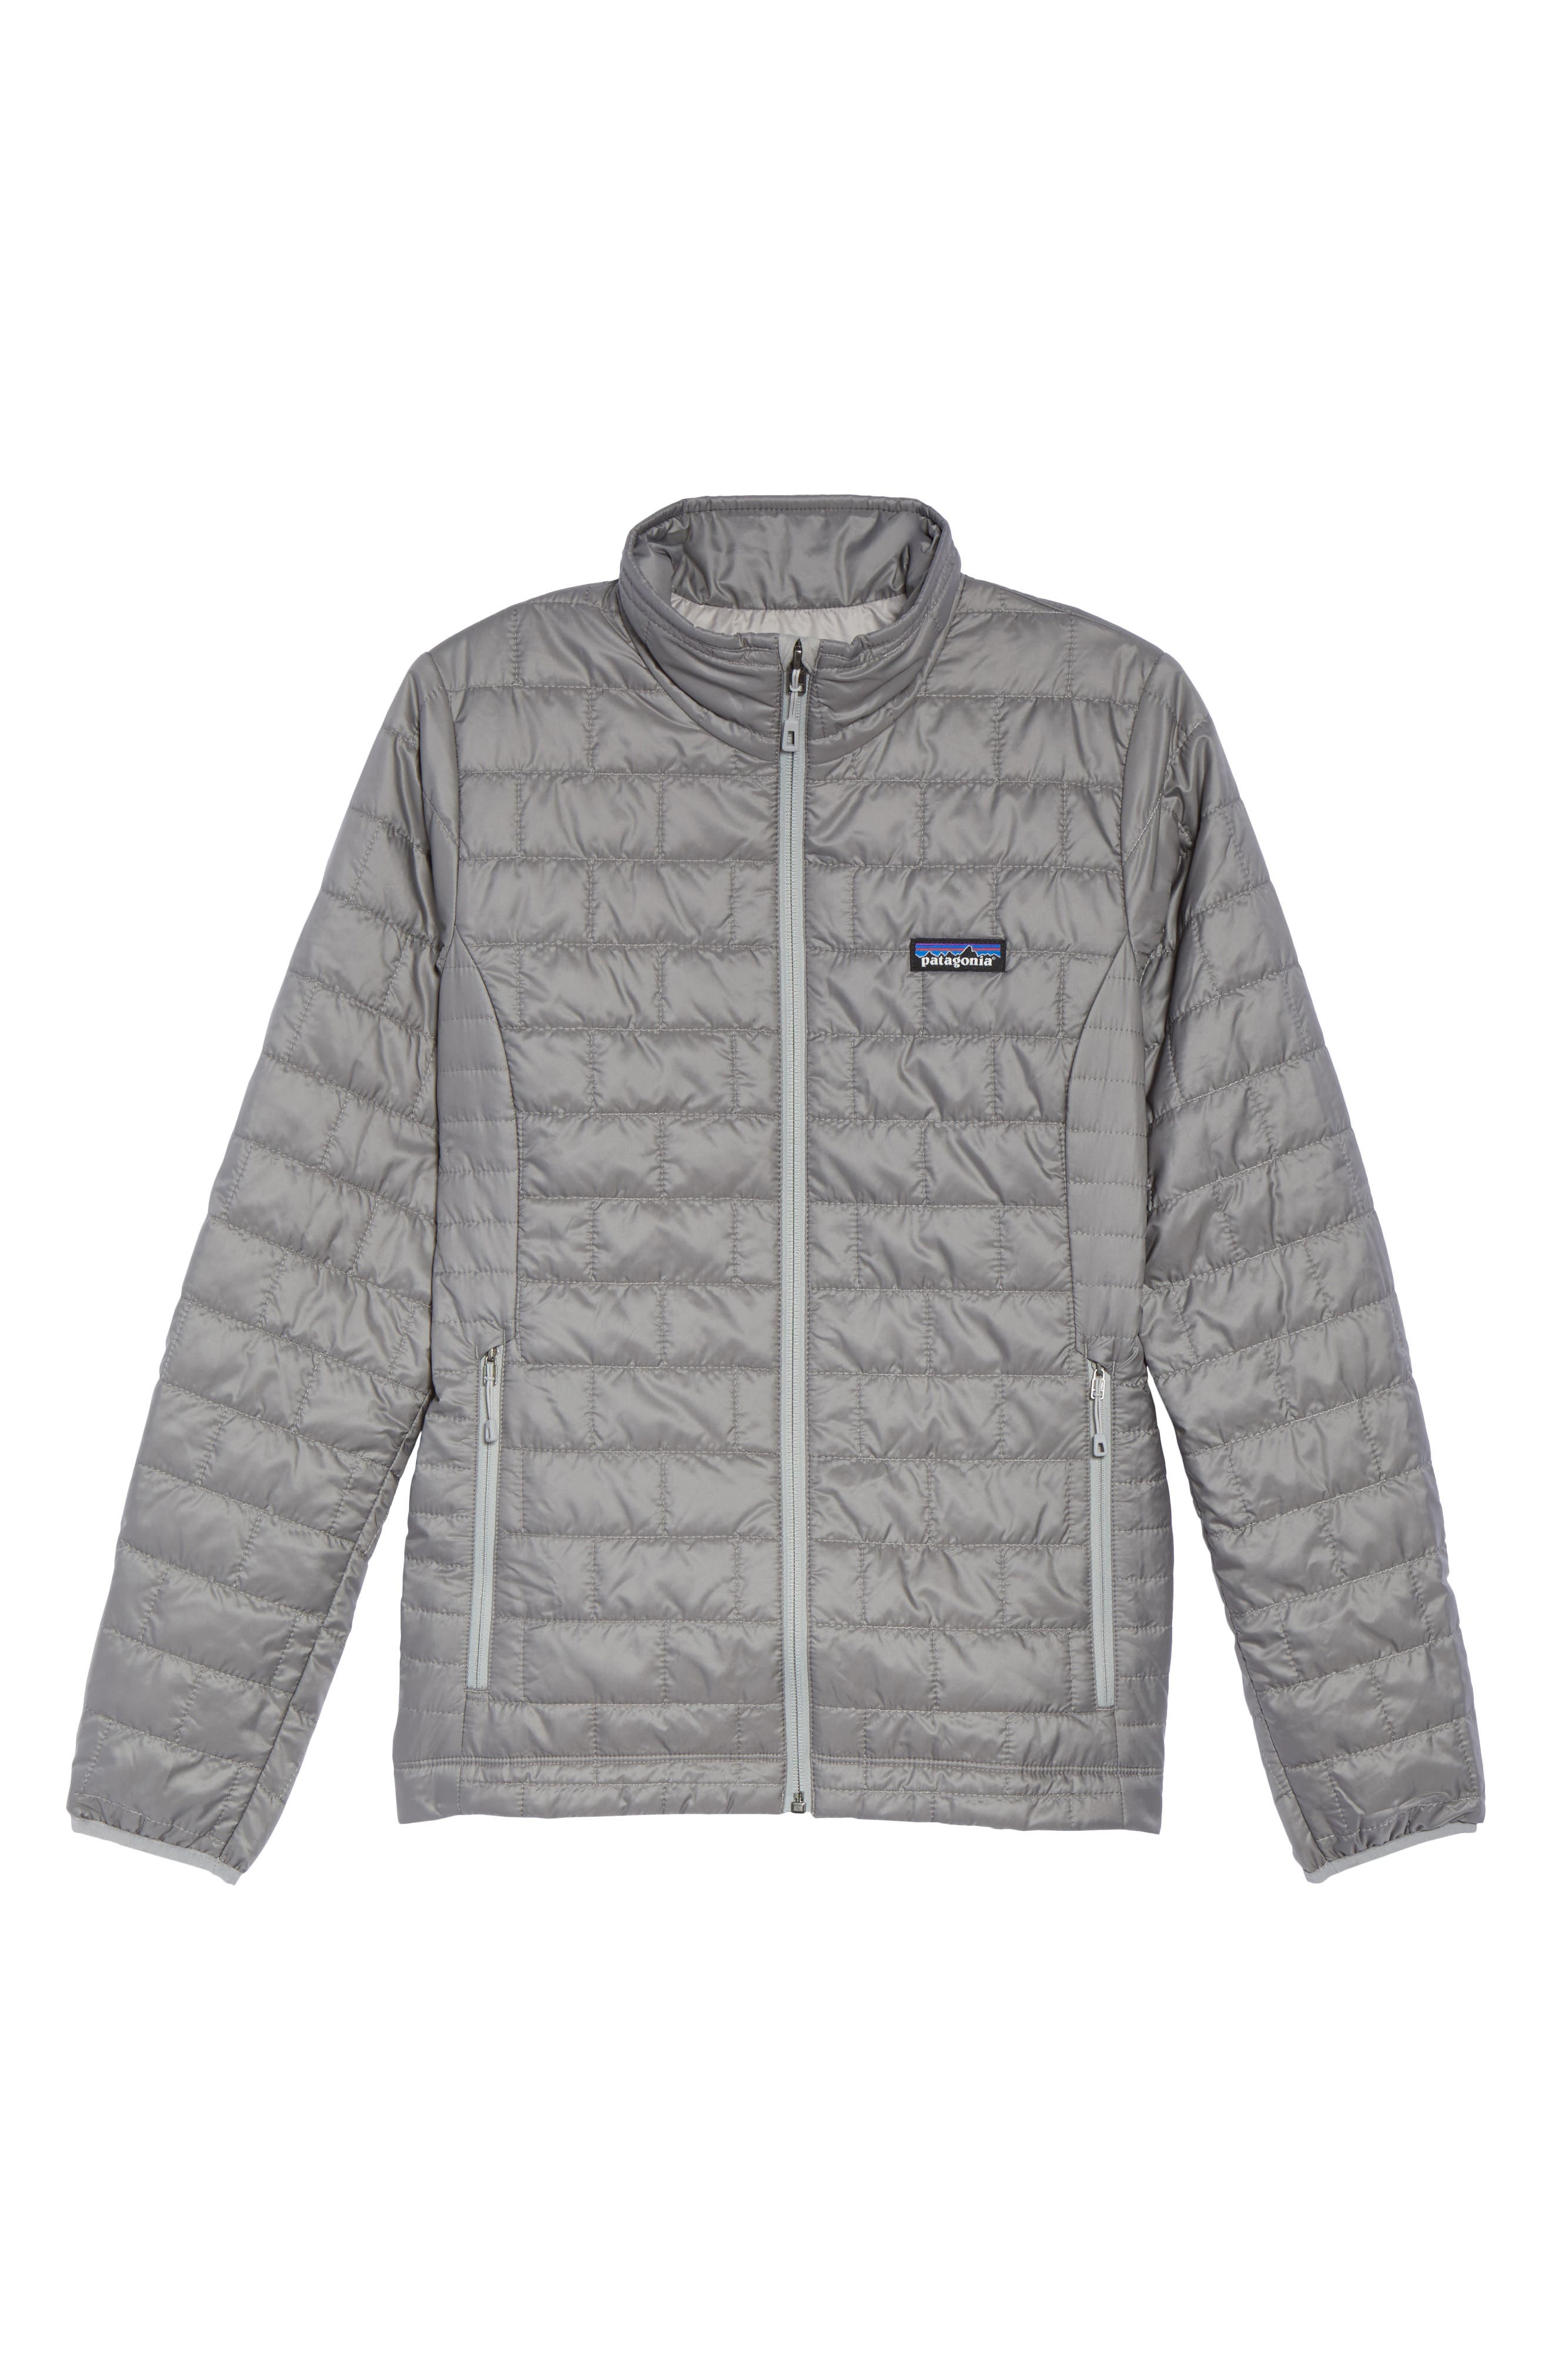 Nano Puff<sup>®</sup> Water Resistant Jacket,                             Alternate thumbnail 6, color,                             FEATHER GREY